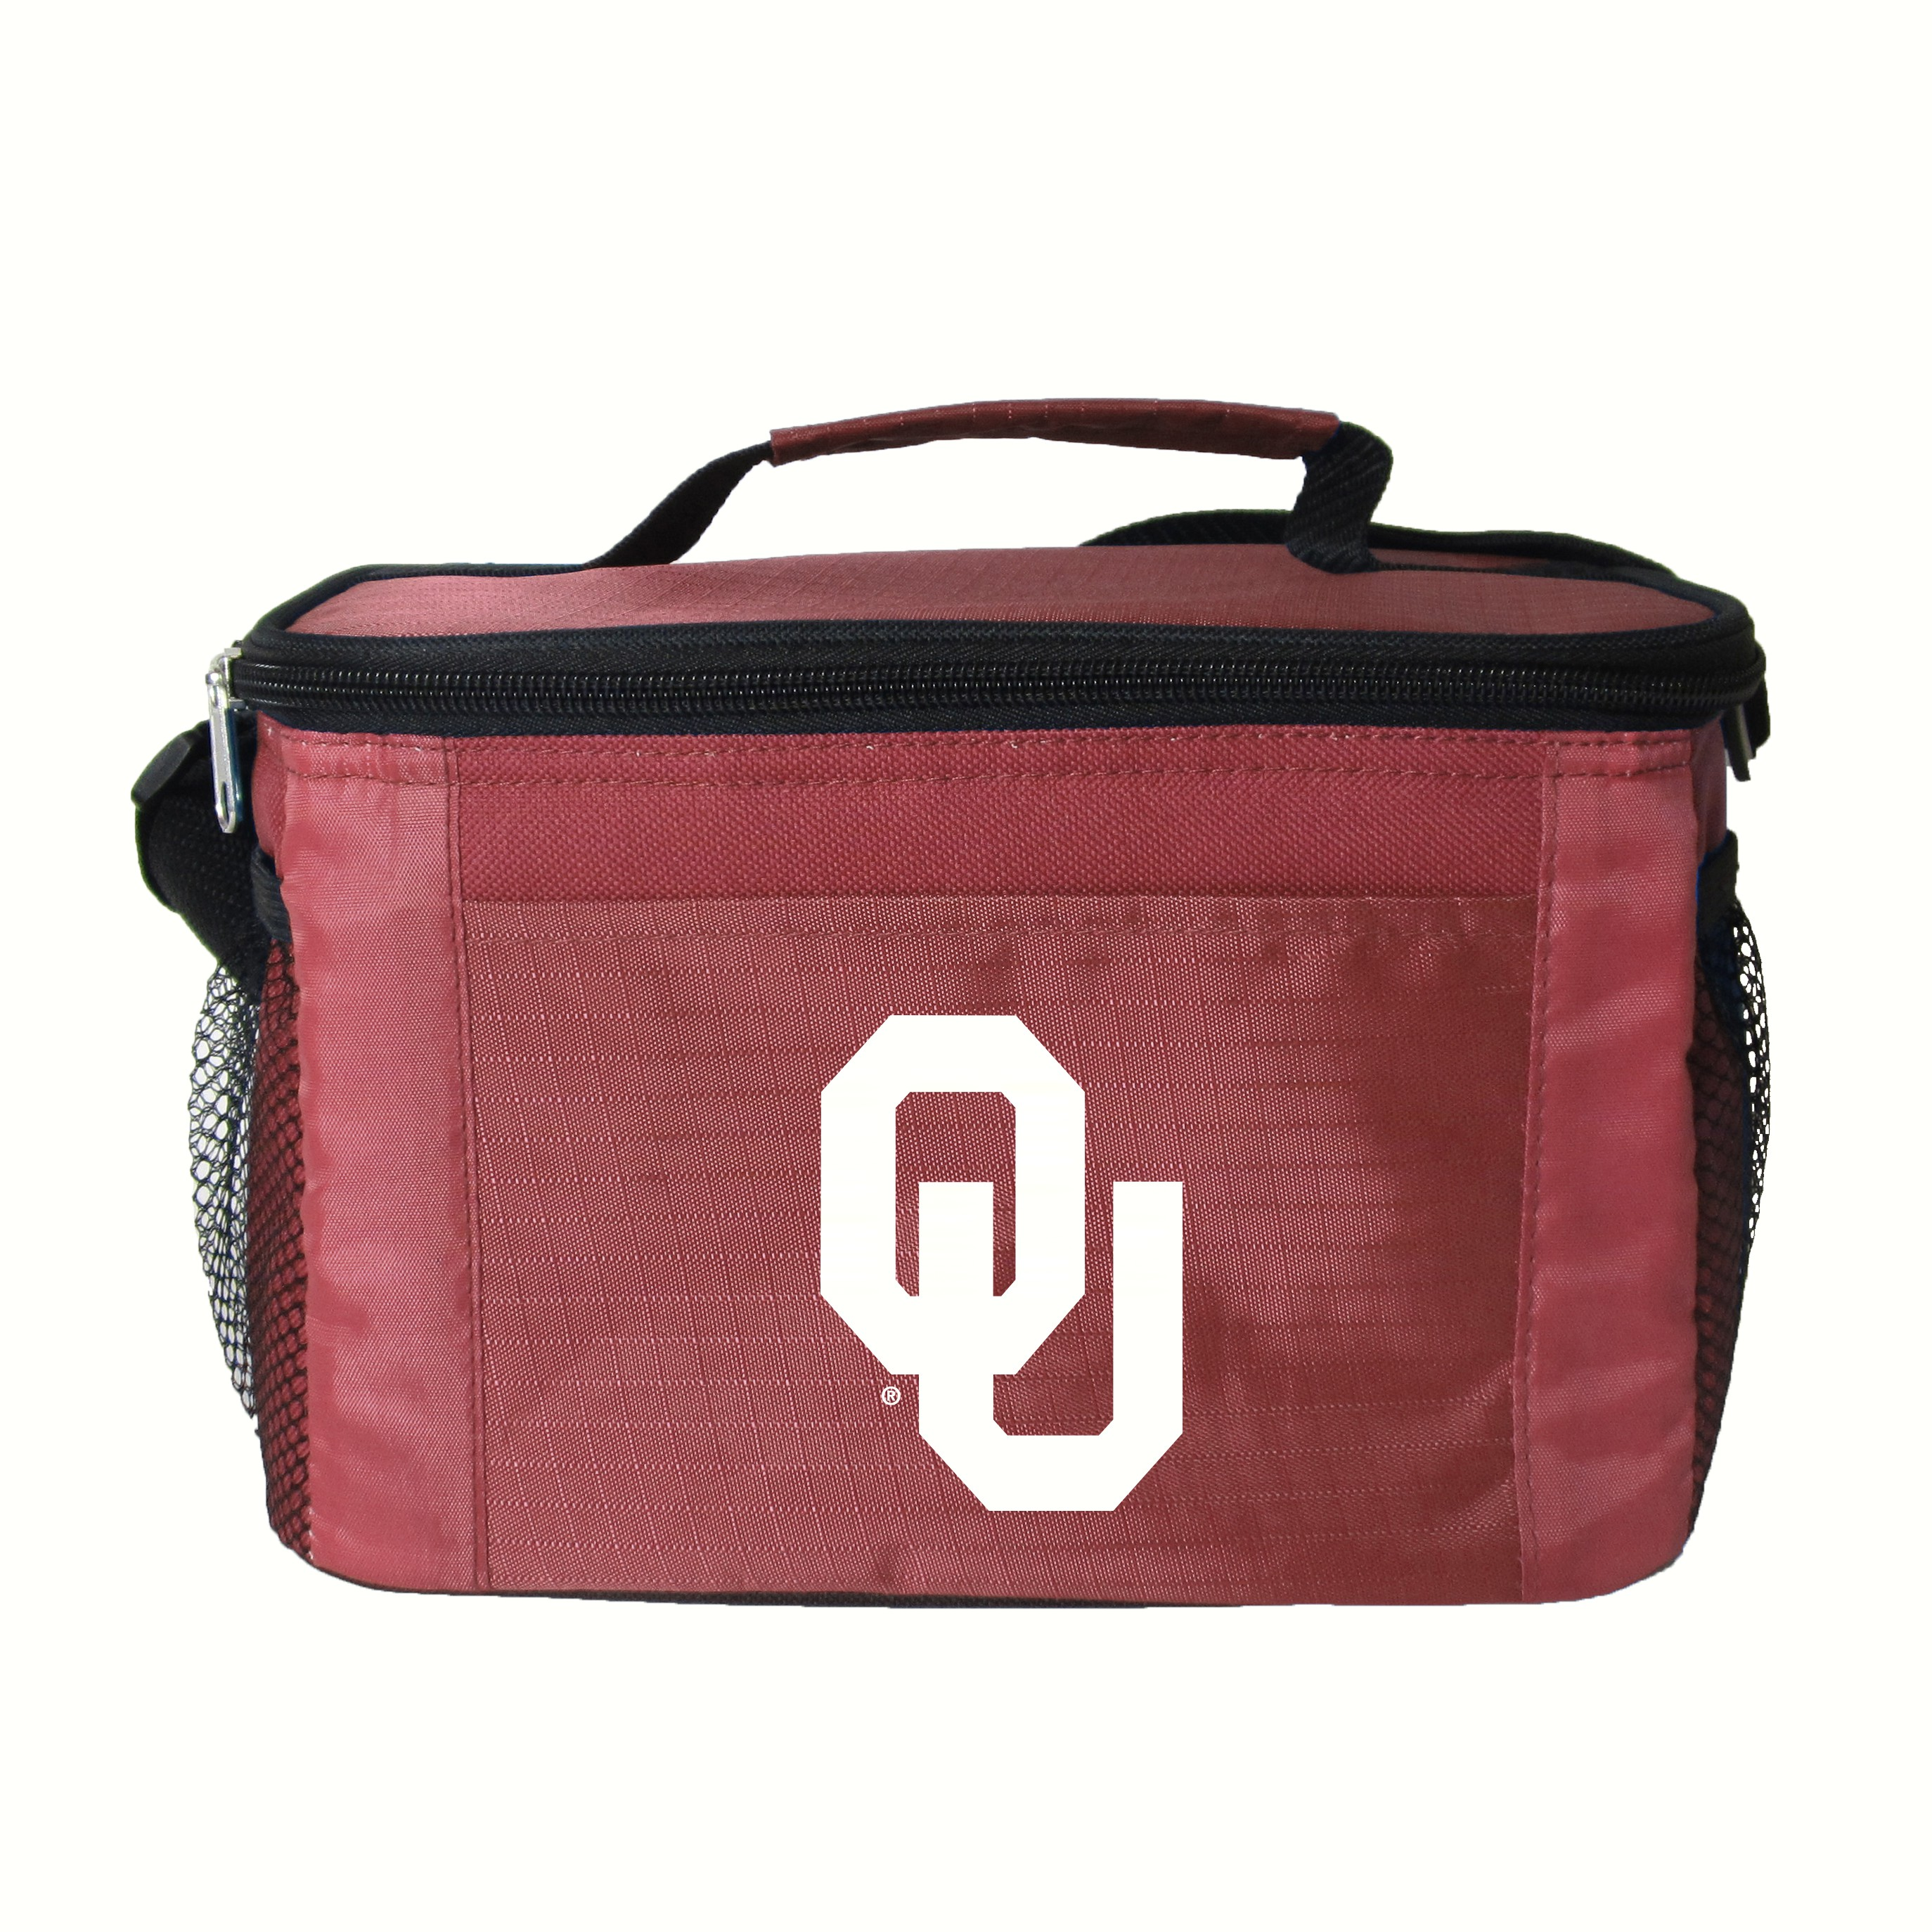 Kooler Bag Oklahoma Sooners (Holds a 6 pack)